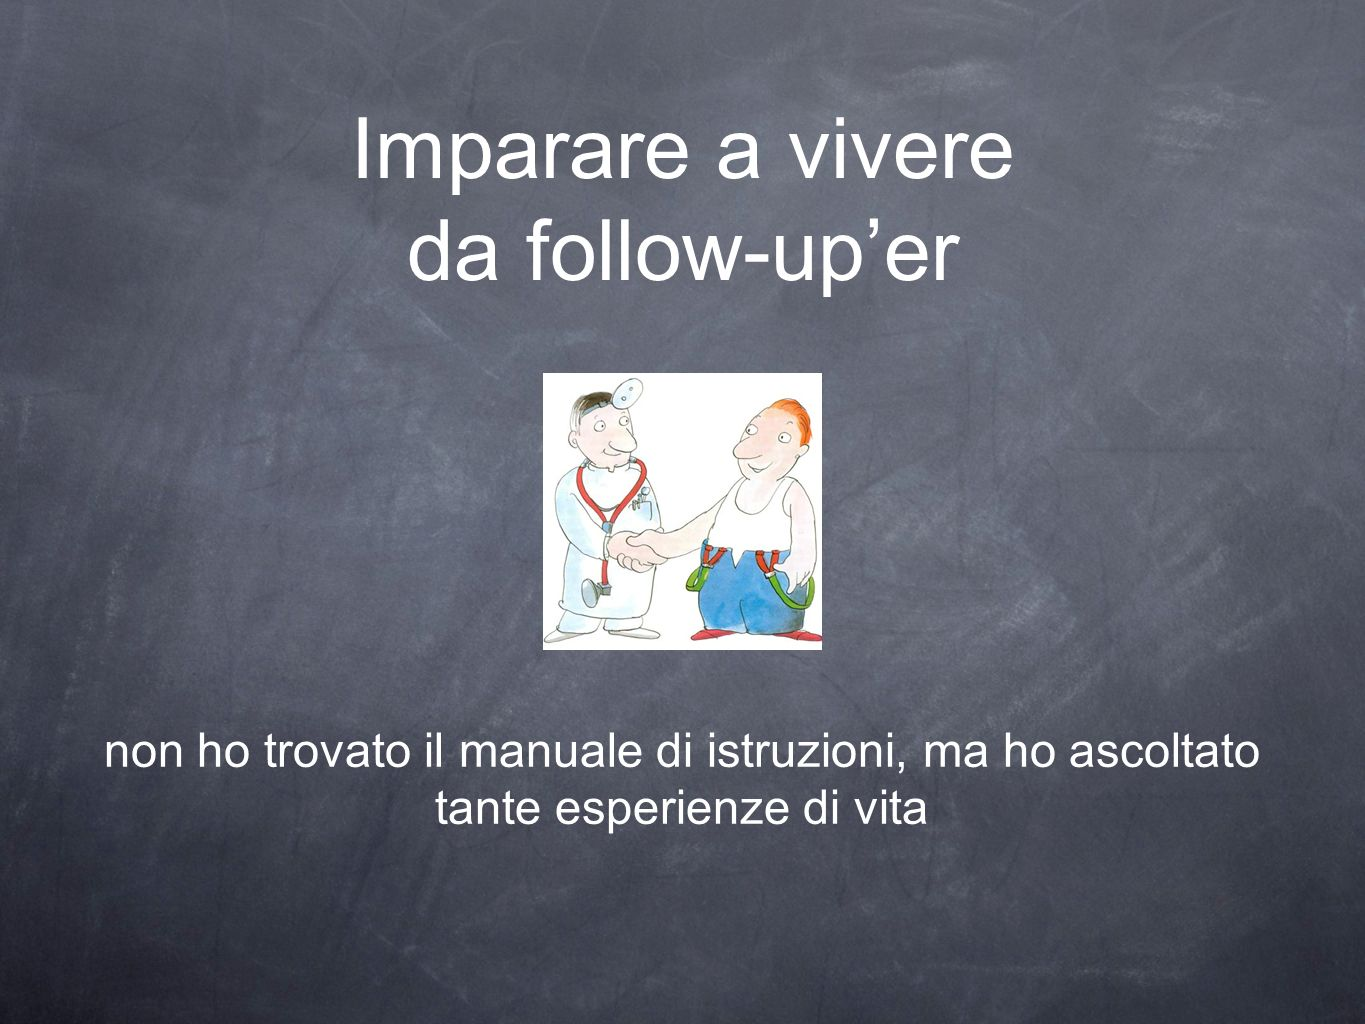 Imparare a vivere da follow-up'er